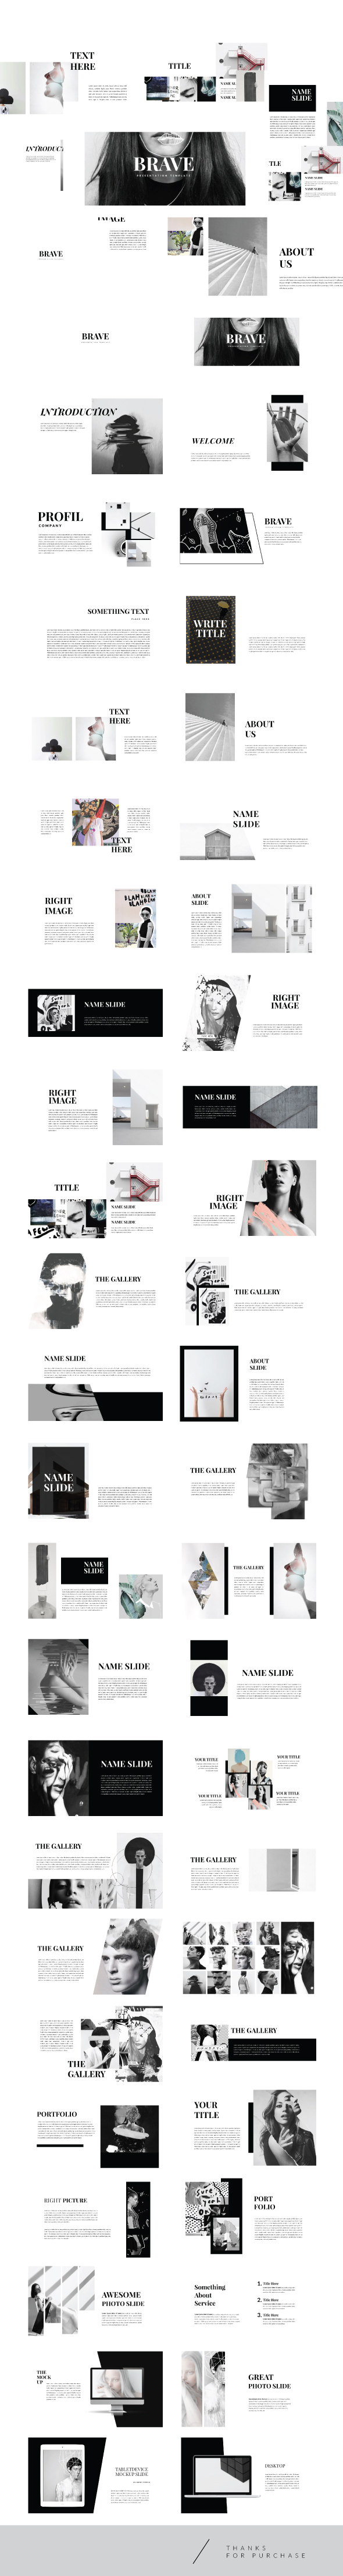 Brave - Clean Keynote Template Creative - Creative Keynote Templates